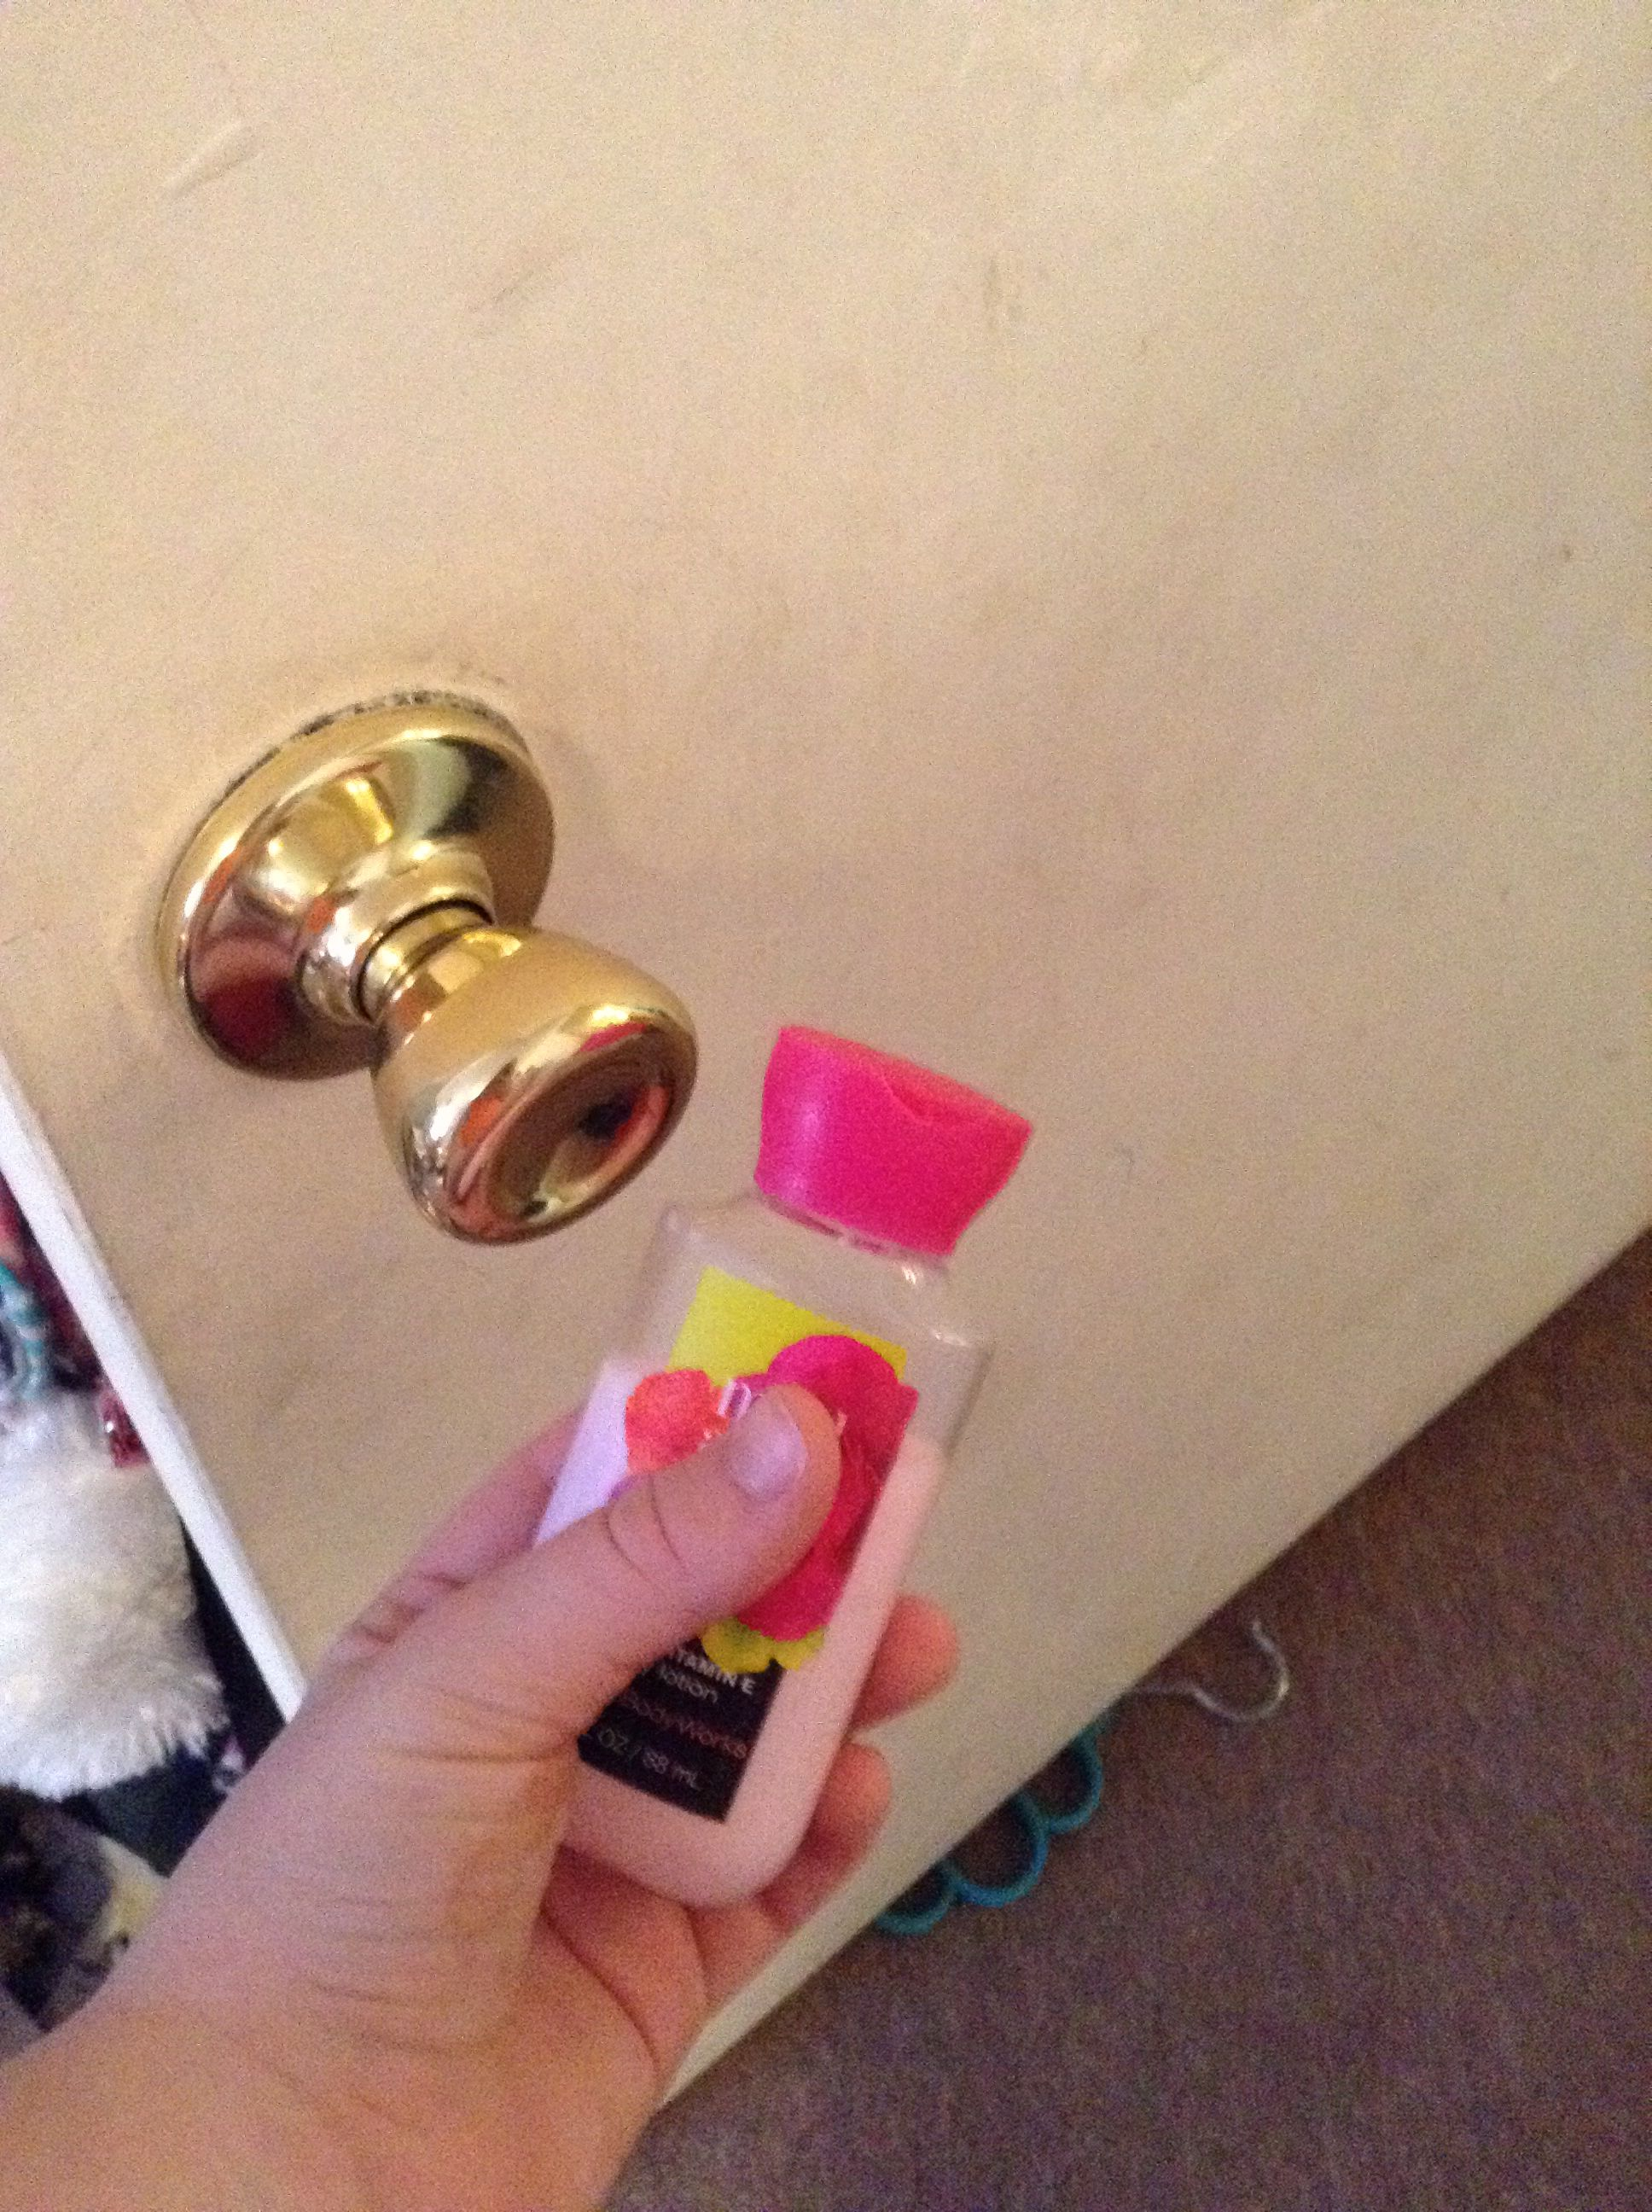 Fun Prank To Do An Your Siblings Co Workers And Roommates